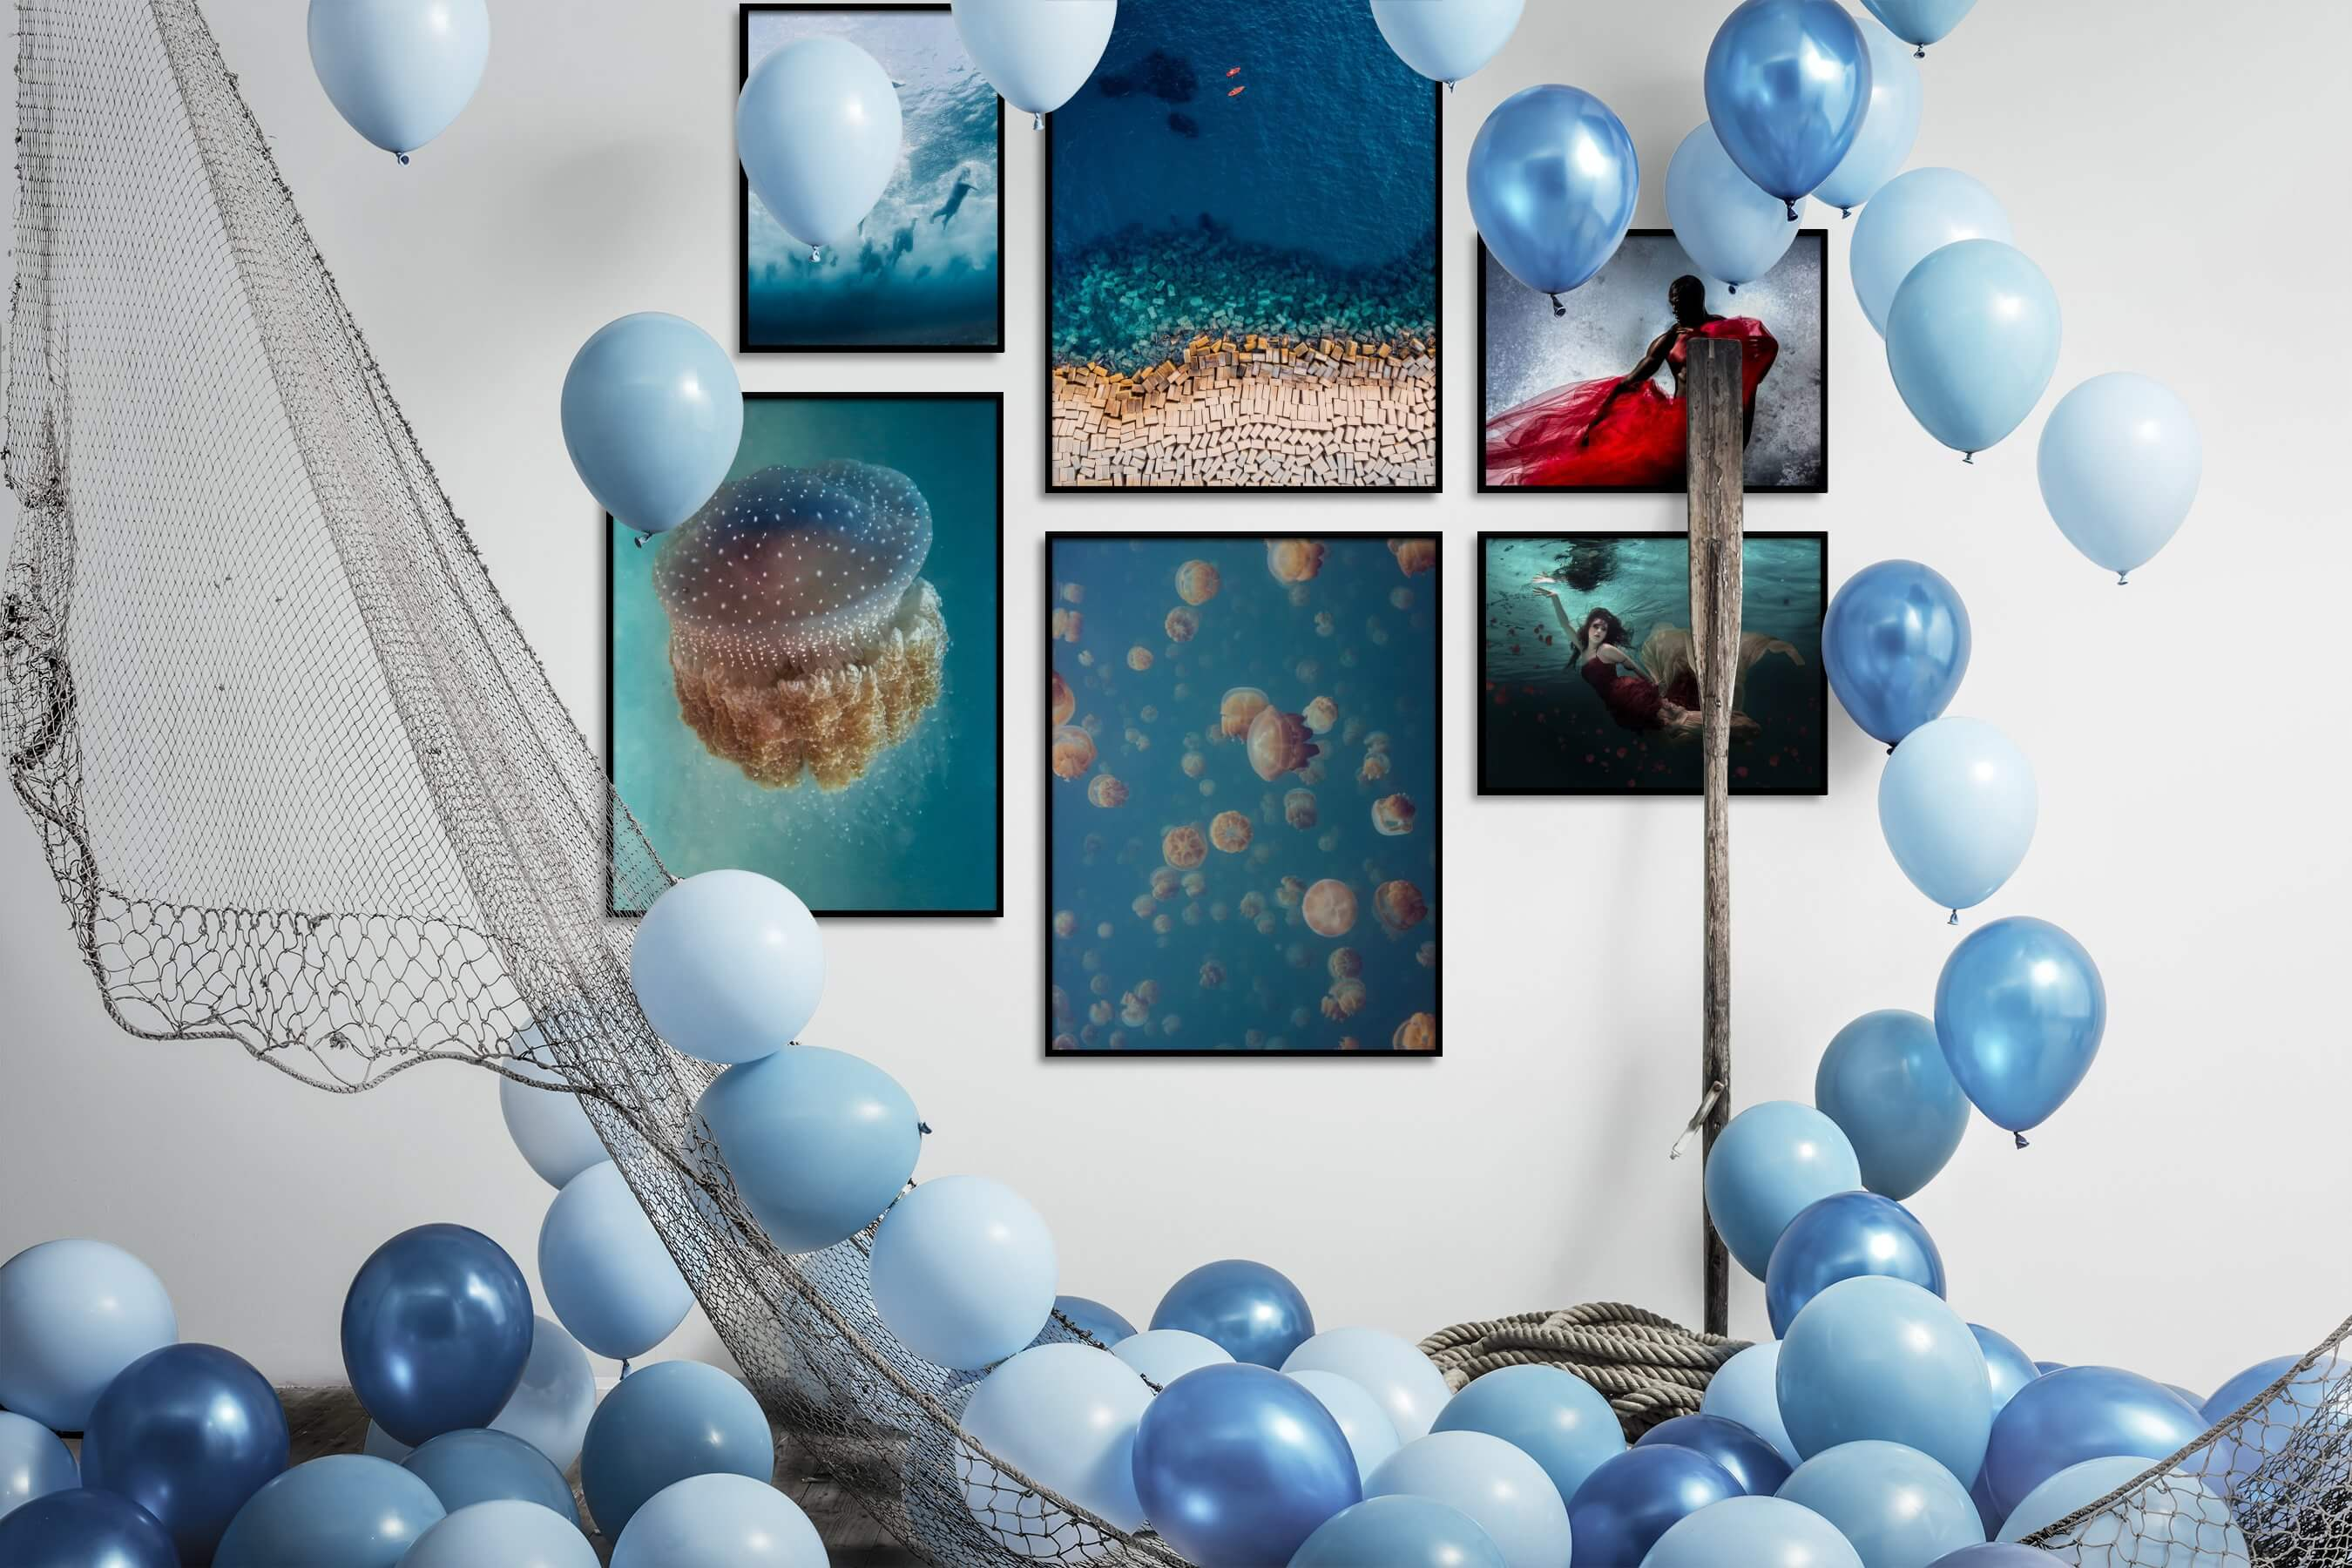 Gallery wall idea with six framed pictures arranged on a wall depicting Beach & Water, For the Moderate, Colorful, Animals, and Fashion & Beauty